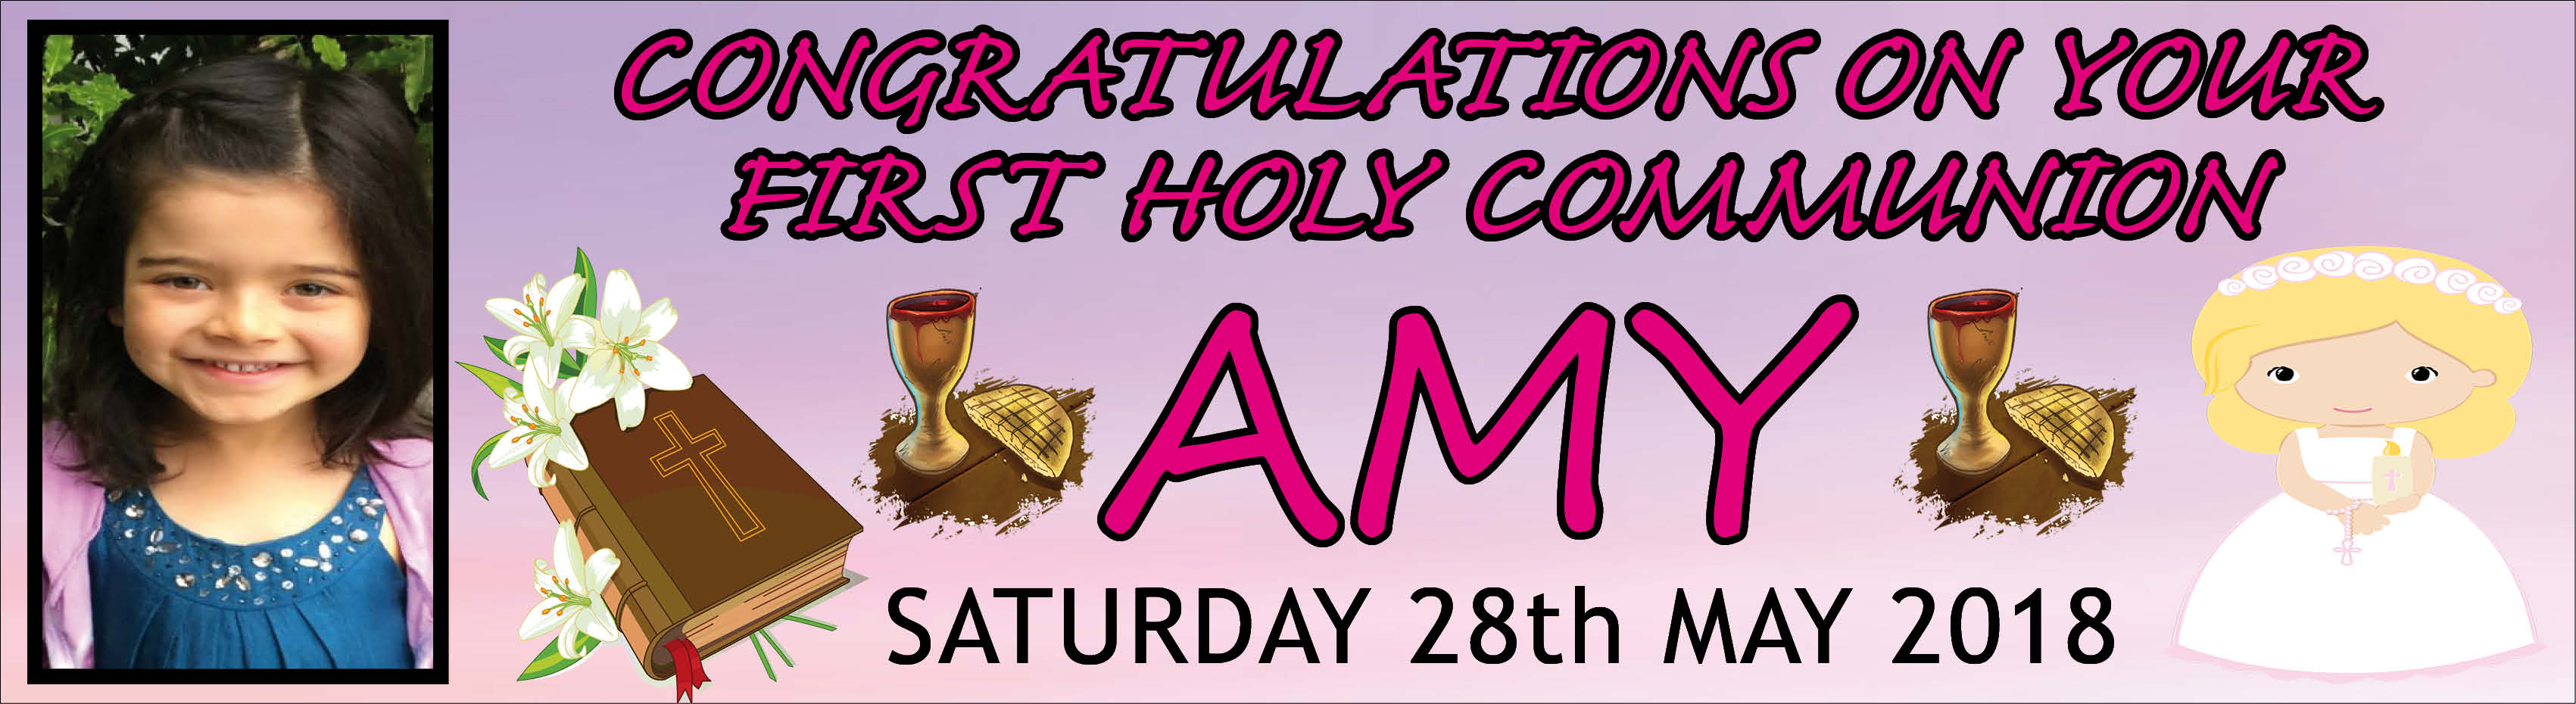 1st Holy Communion Banner 9